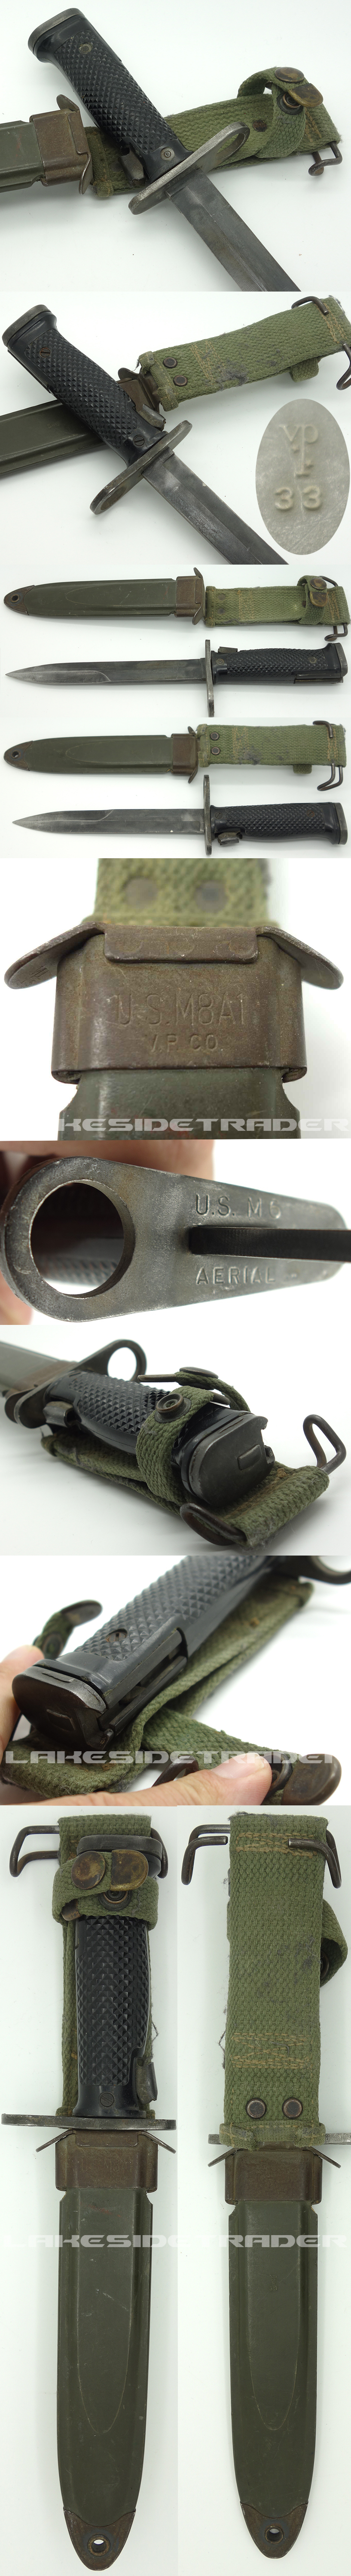 US M6 AERIAL BAYONET WITH US M8A1 V.P. CO.